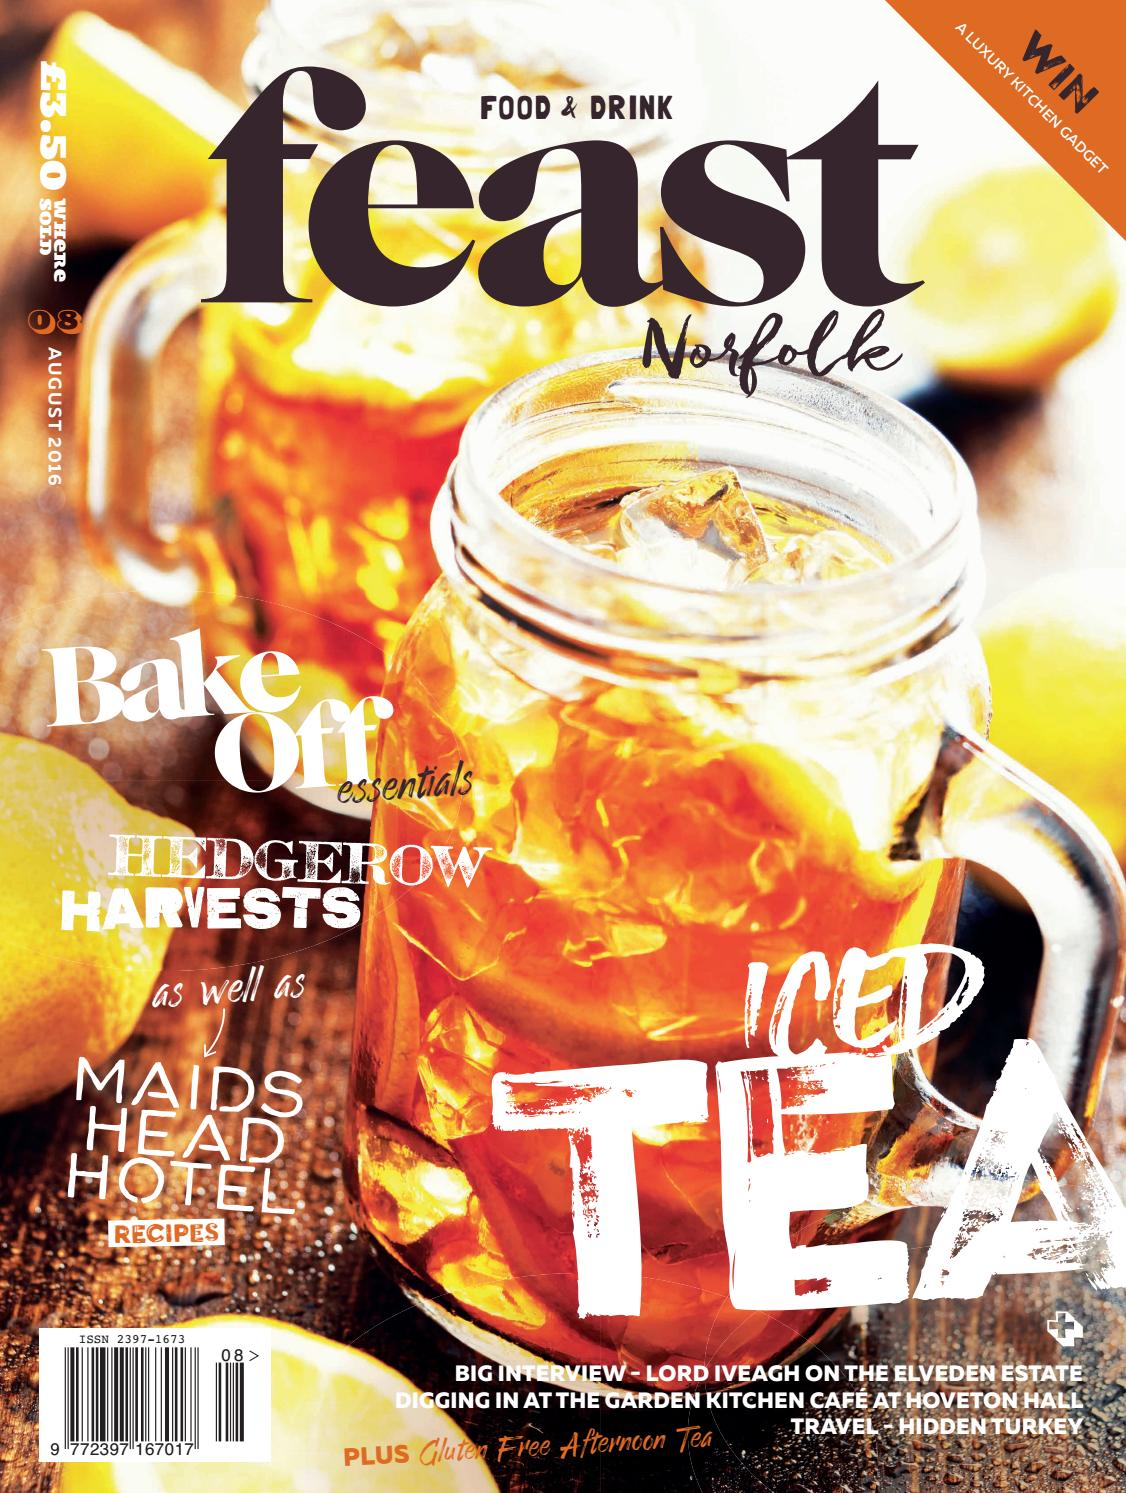 Feast Norfolk Magazine August 16 Issue 08 By New Tony Moly Delight Tint Mini 15g Travel Size 02 Apple Red Issuu